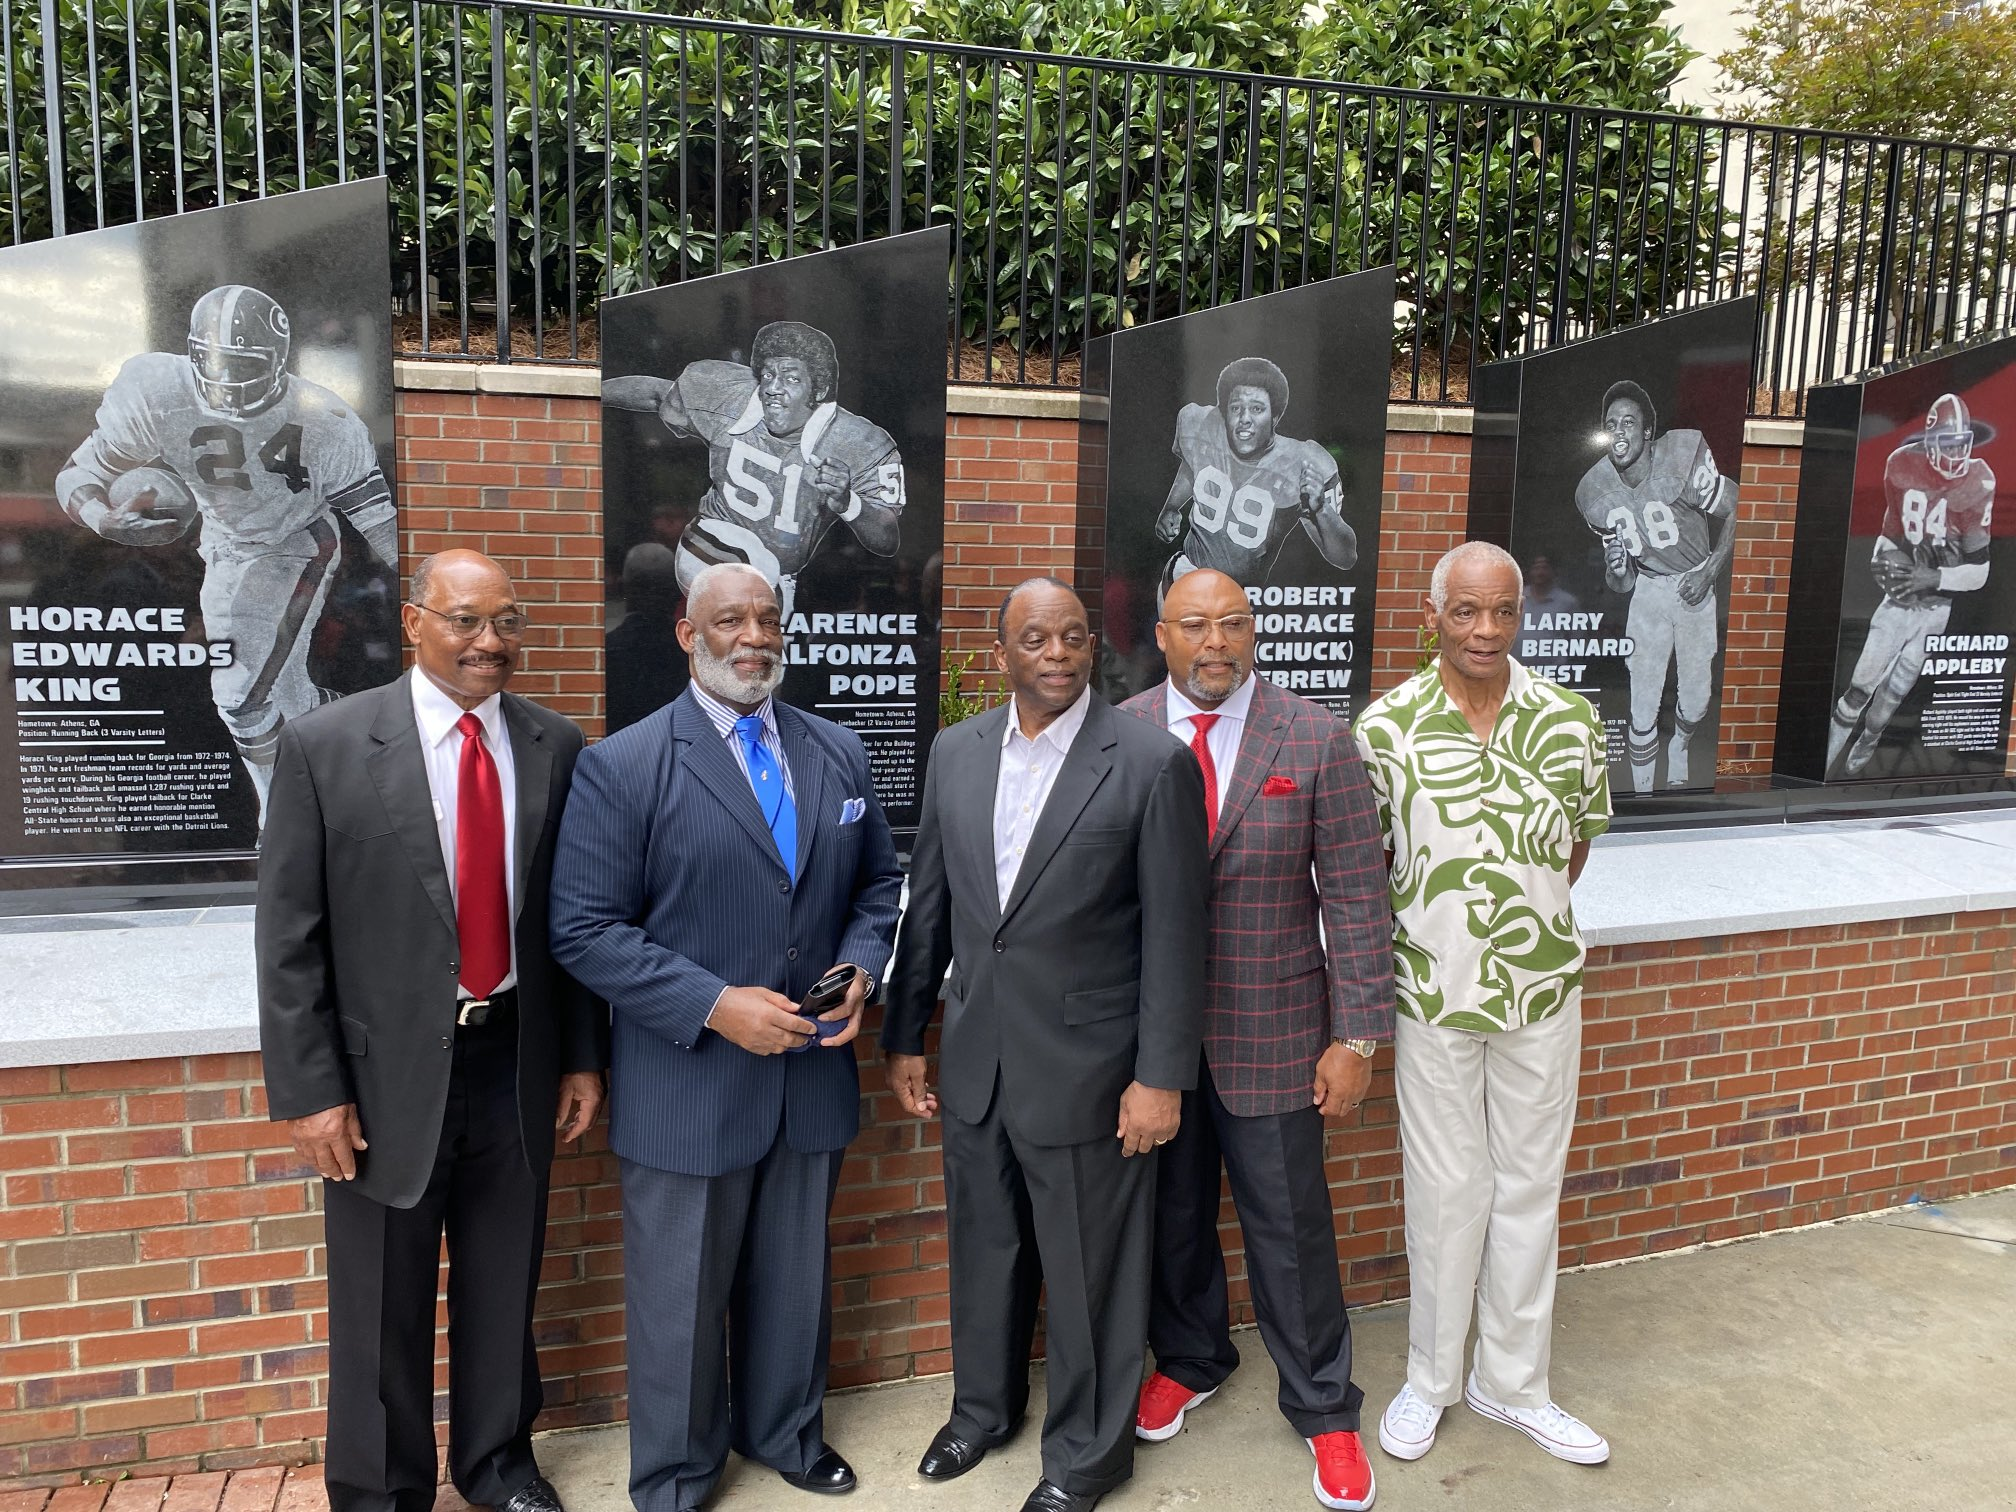 University of Georgia's First Black Football Players Reunite 50 Years Later to Celebrate Exhibit in Their Honor at College Football Hall of Fame